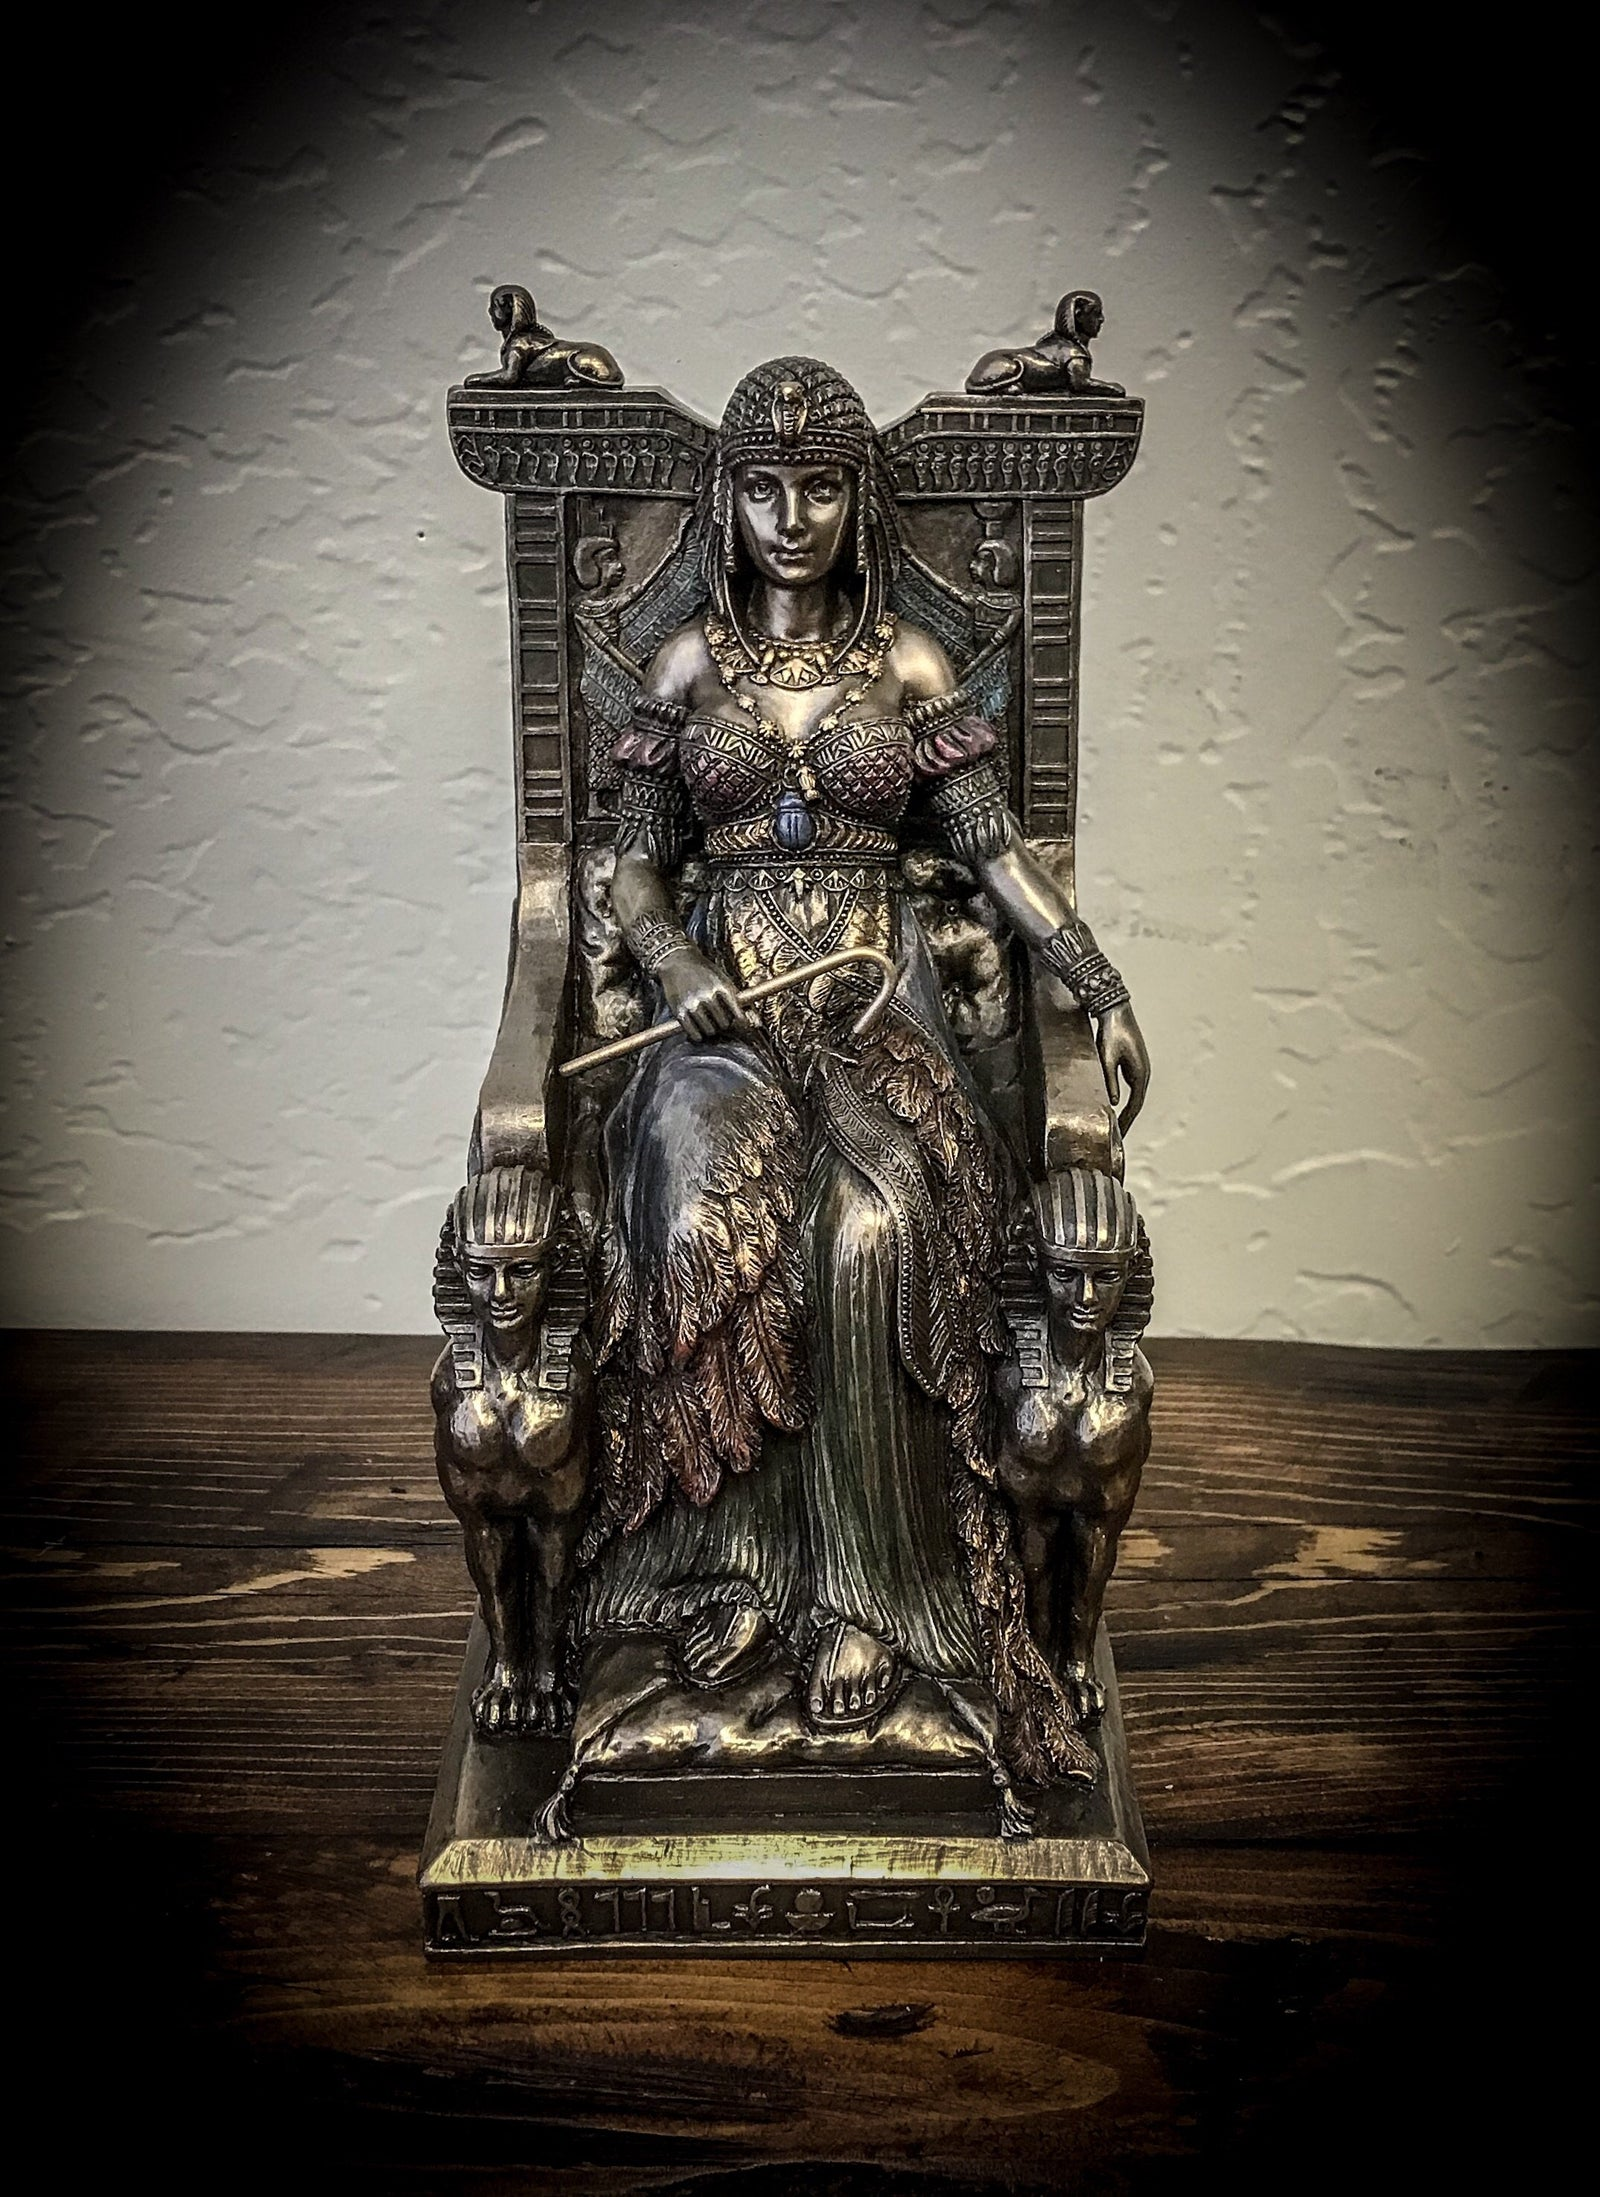 Egyptian Queen Sitting in Throne